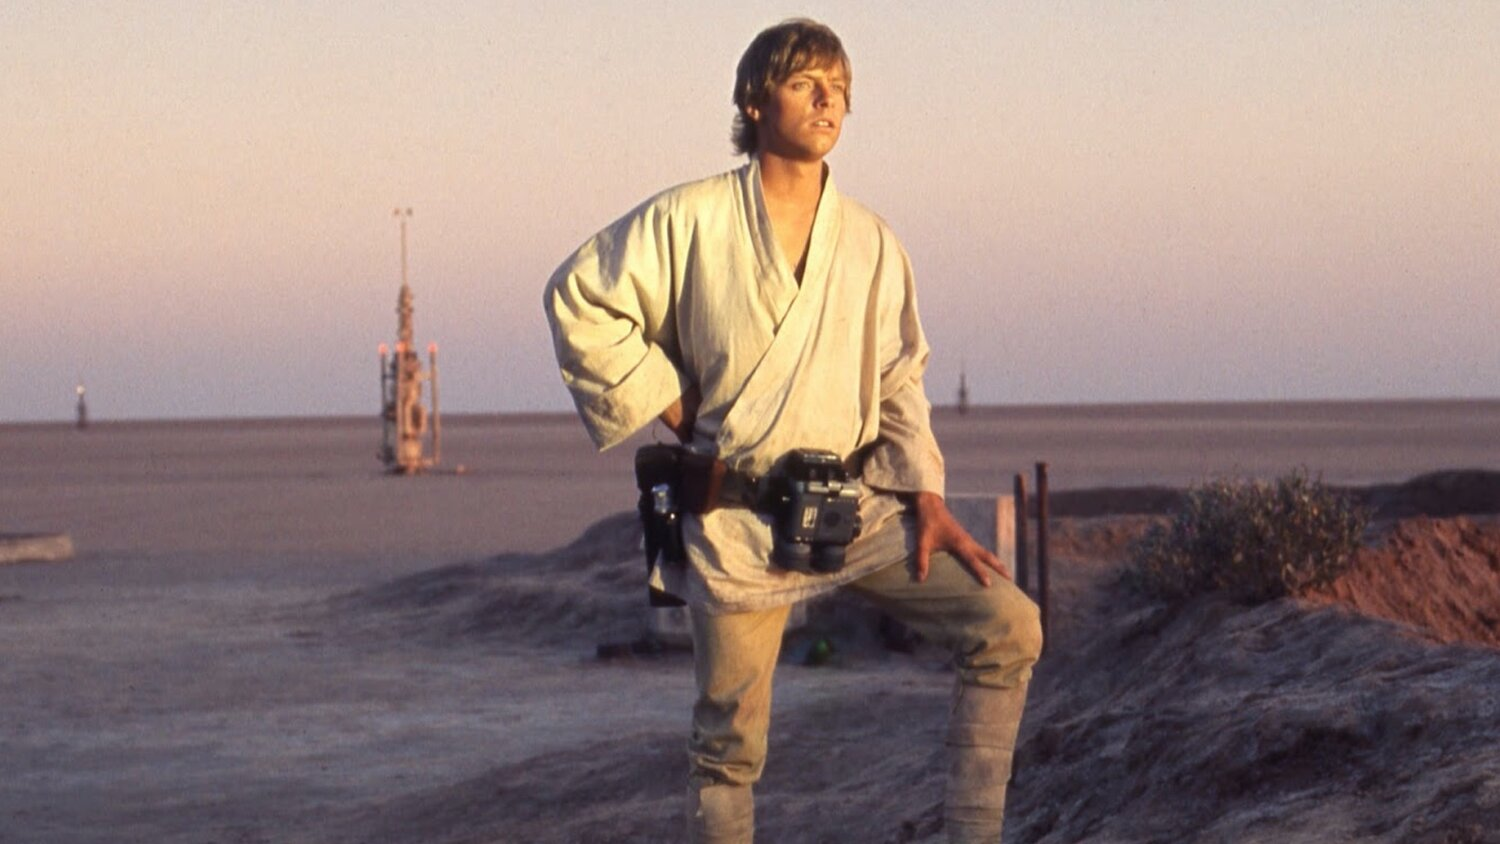 Obi-Wan Kenobi Disney+ Show Will Reportedly Include a Young Luke Skywalker